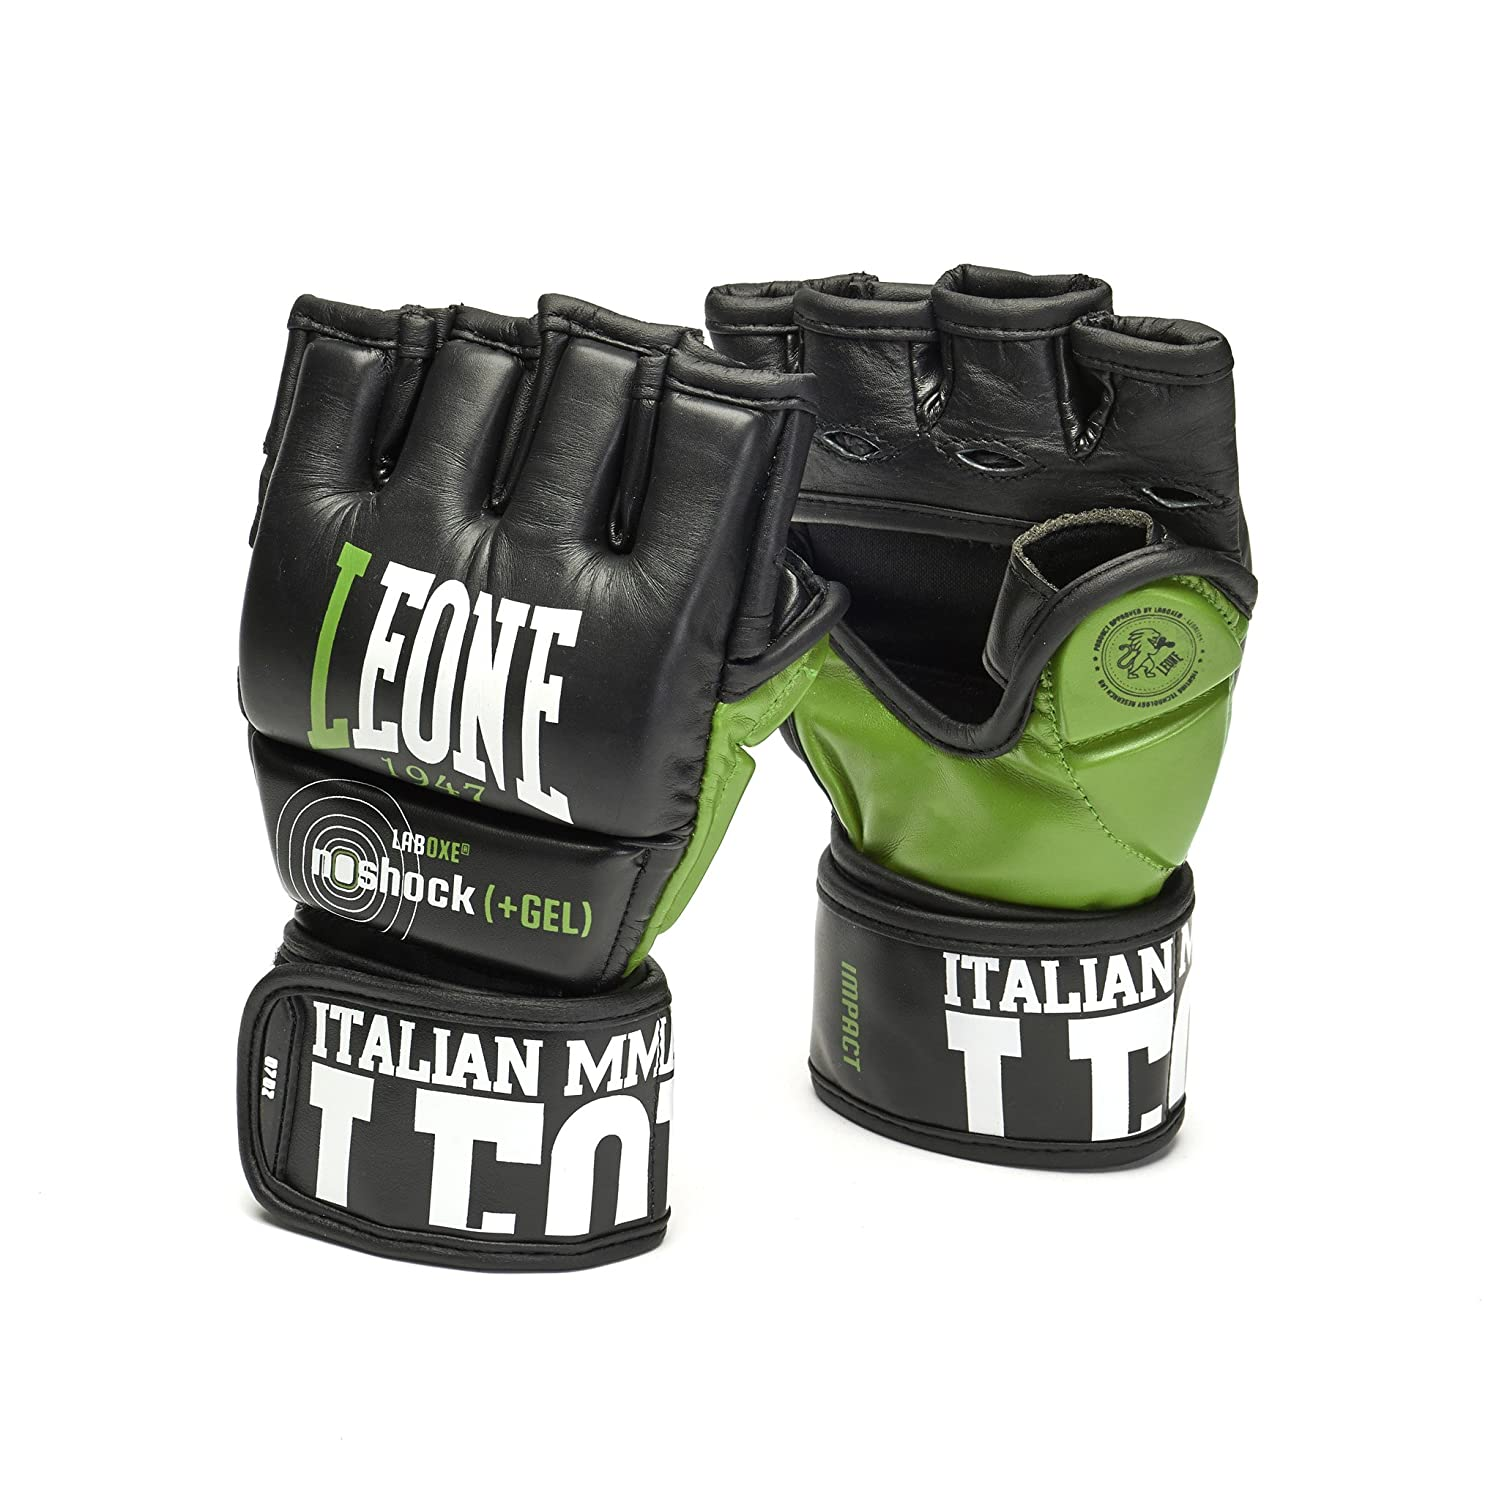 Grappling Gloves Martial Arts Sparring Gloves Punching Bag Cage Fight Gloves UFC Combat Training Gloves Impact Leone 1947 MMA Leather Gloves